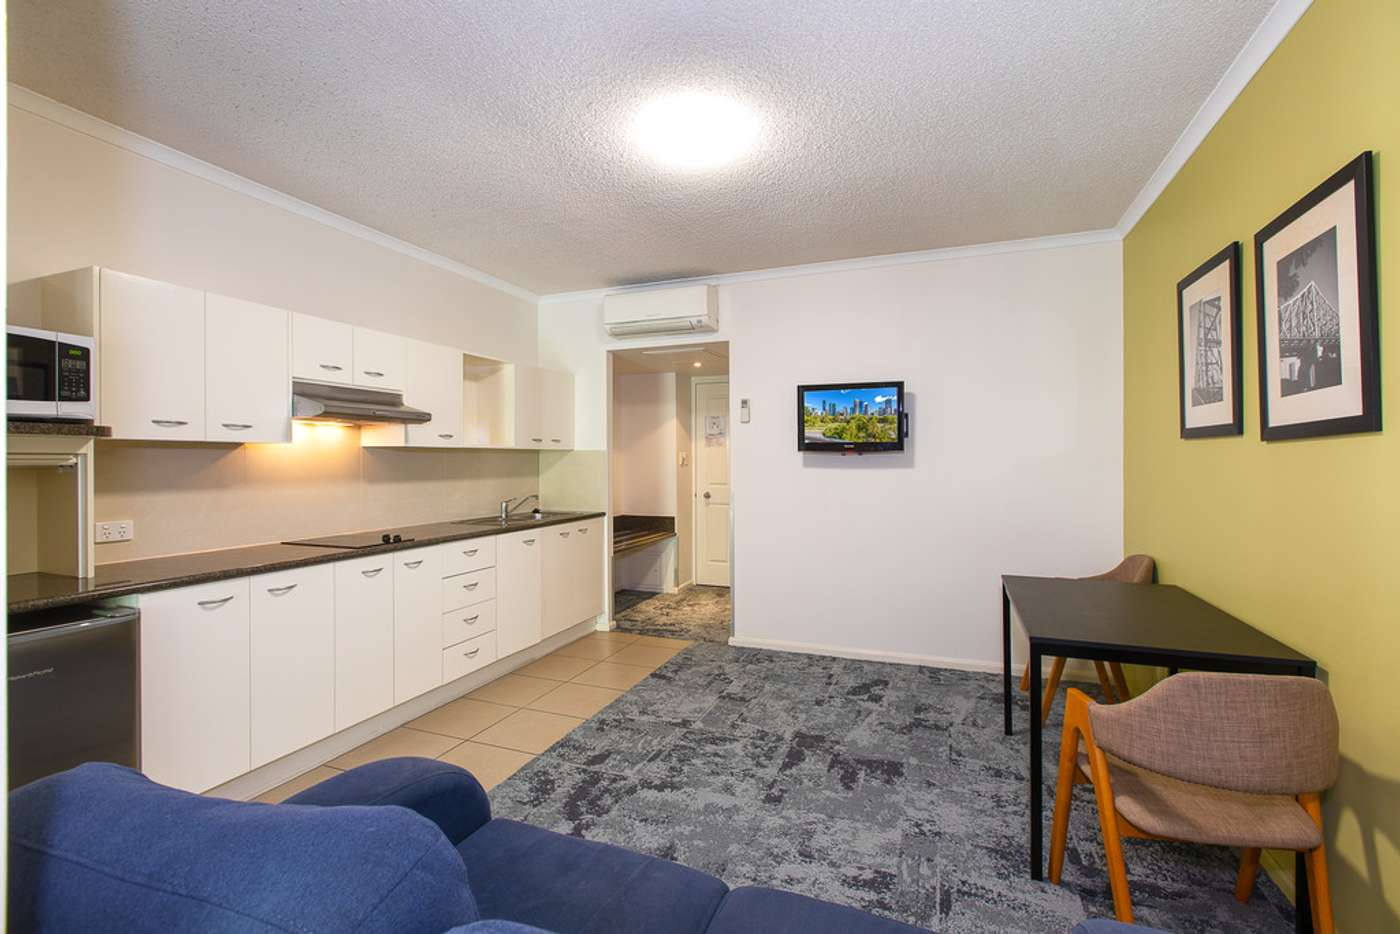 Main view of Homely apartment listing, 85 Deakin Street, Kangaroo Point QLD 4169